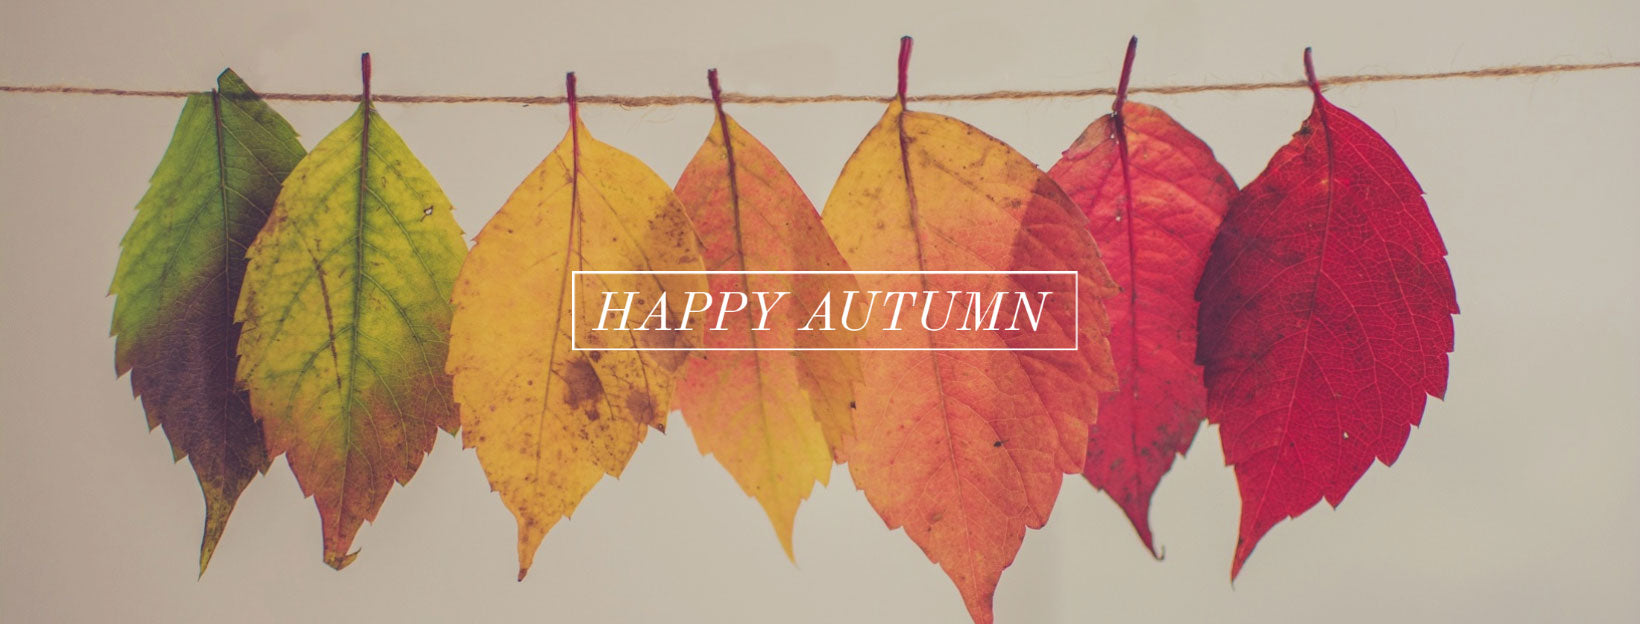 Happy Autumn!